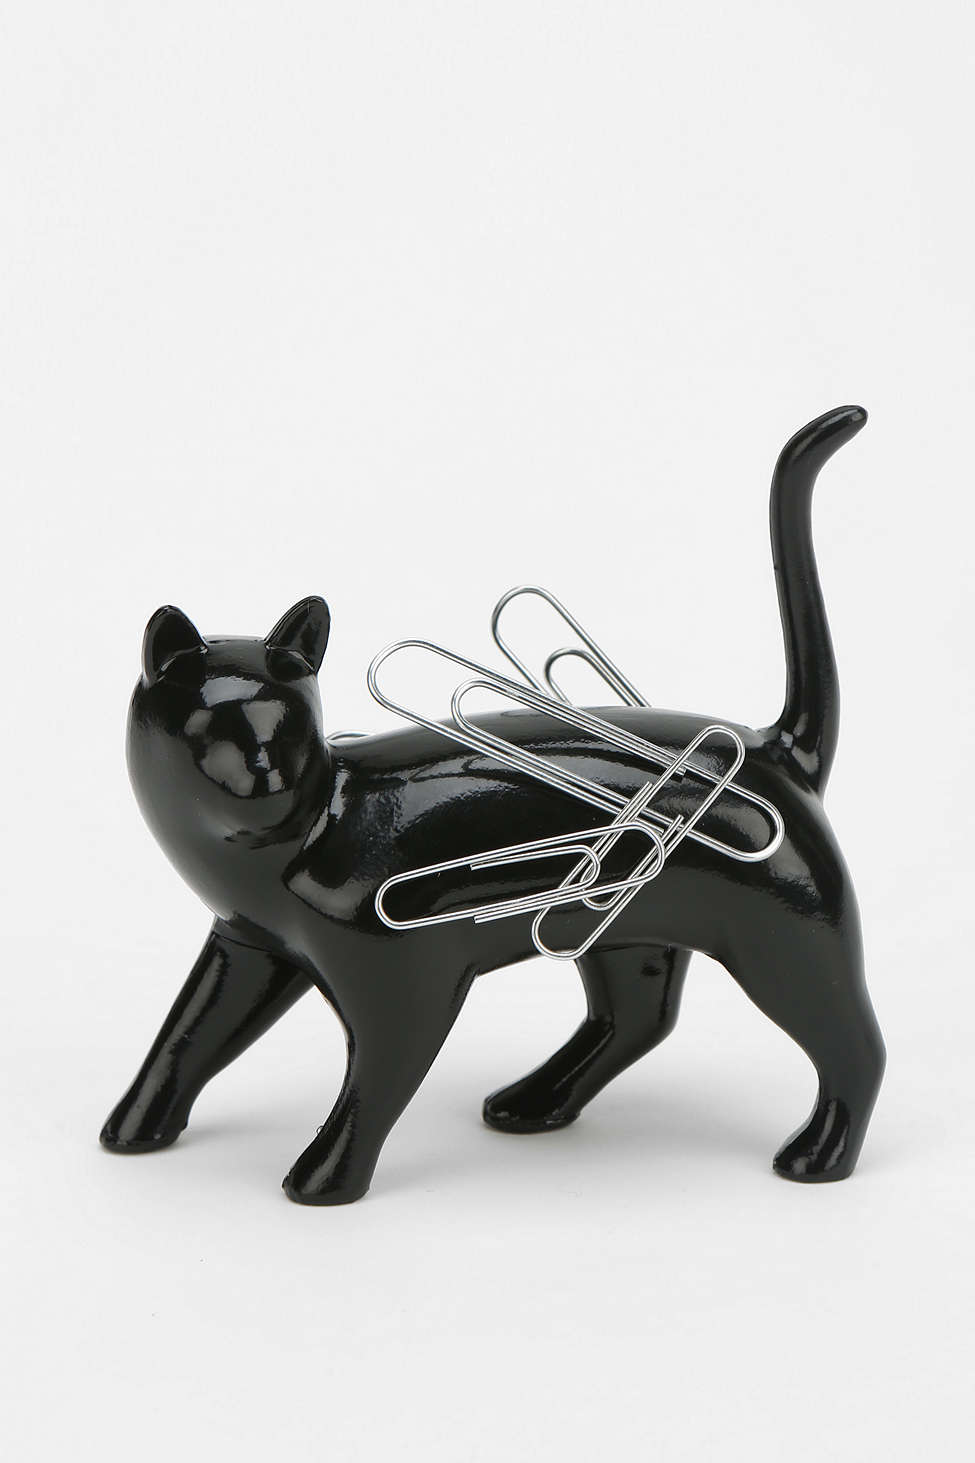 A magnet for clips in the shape of a black cat